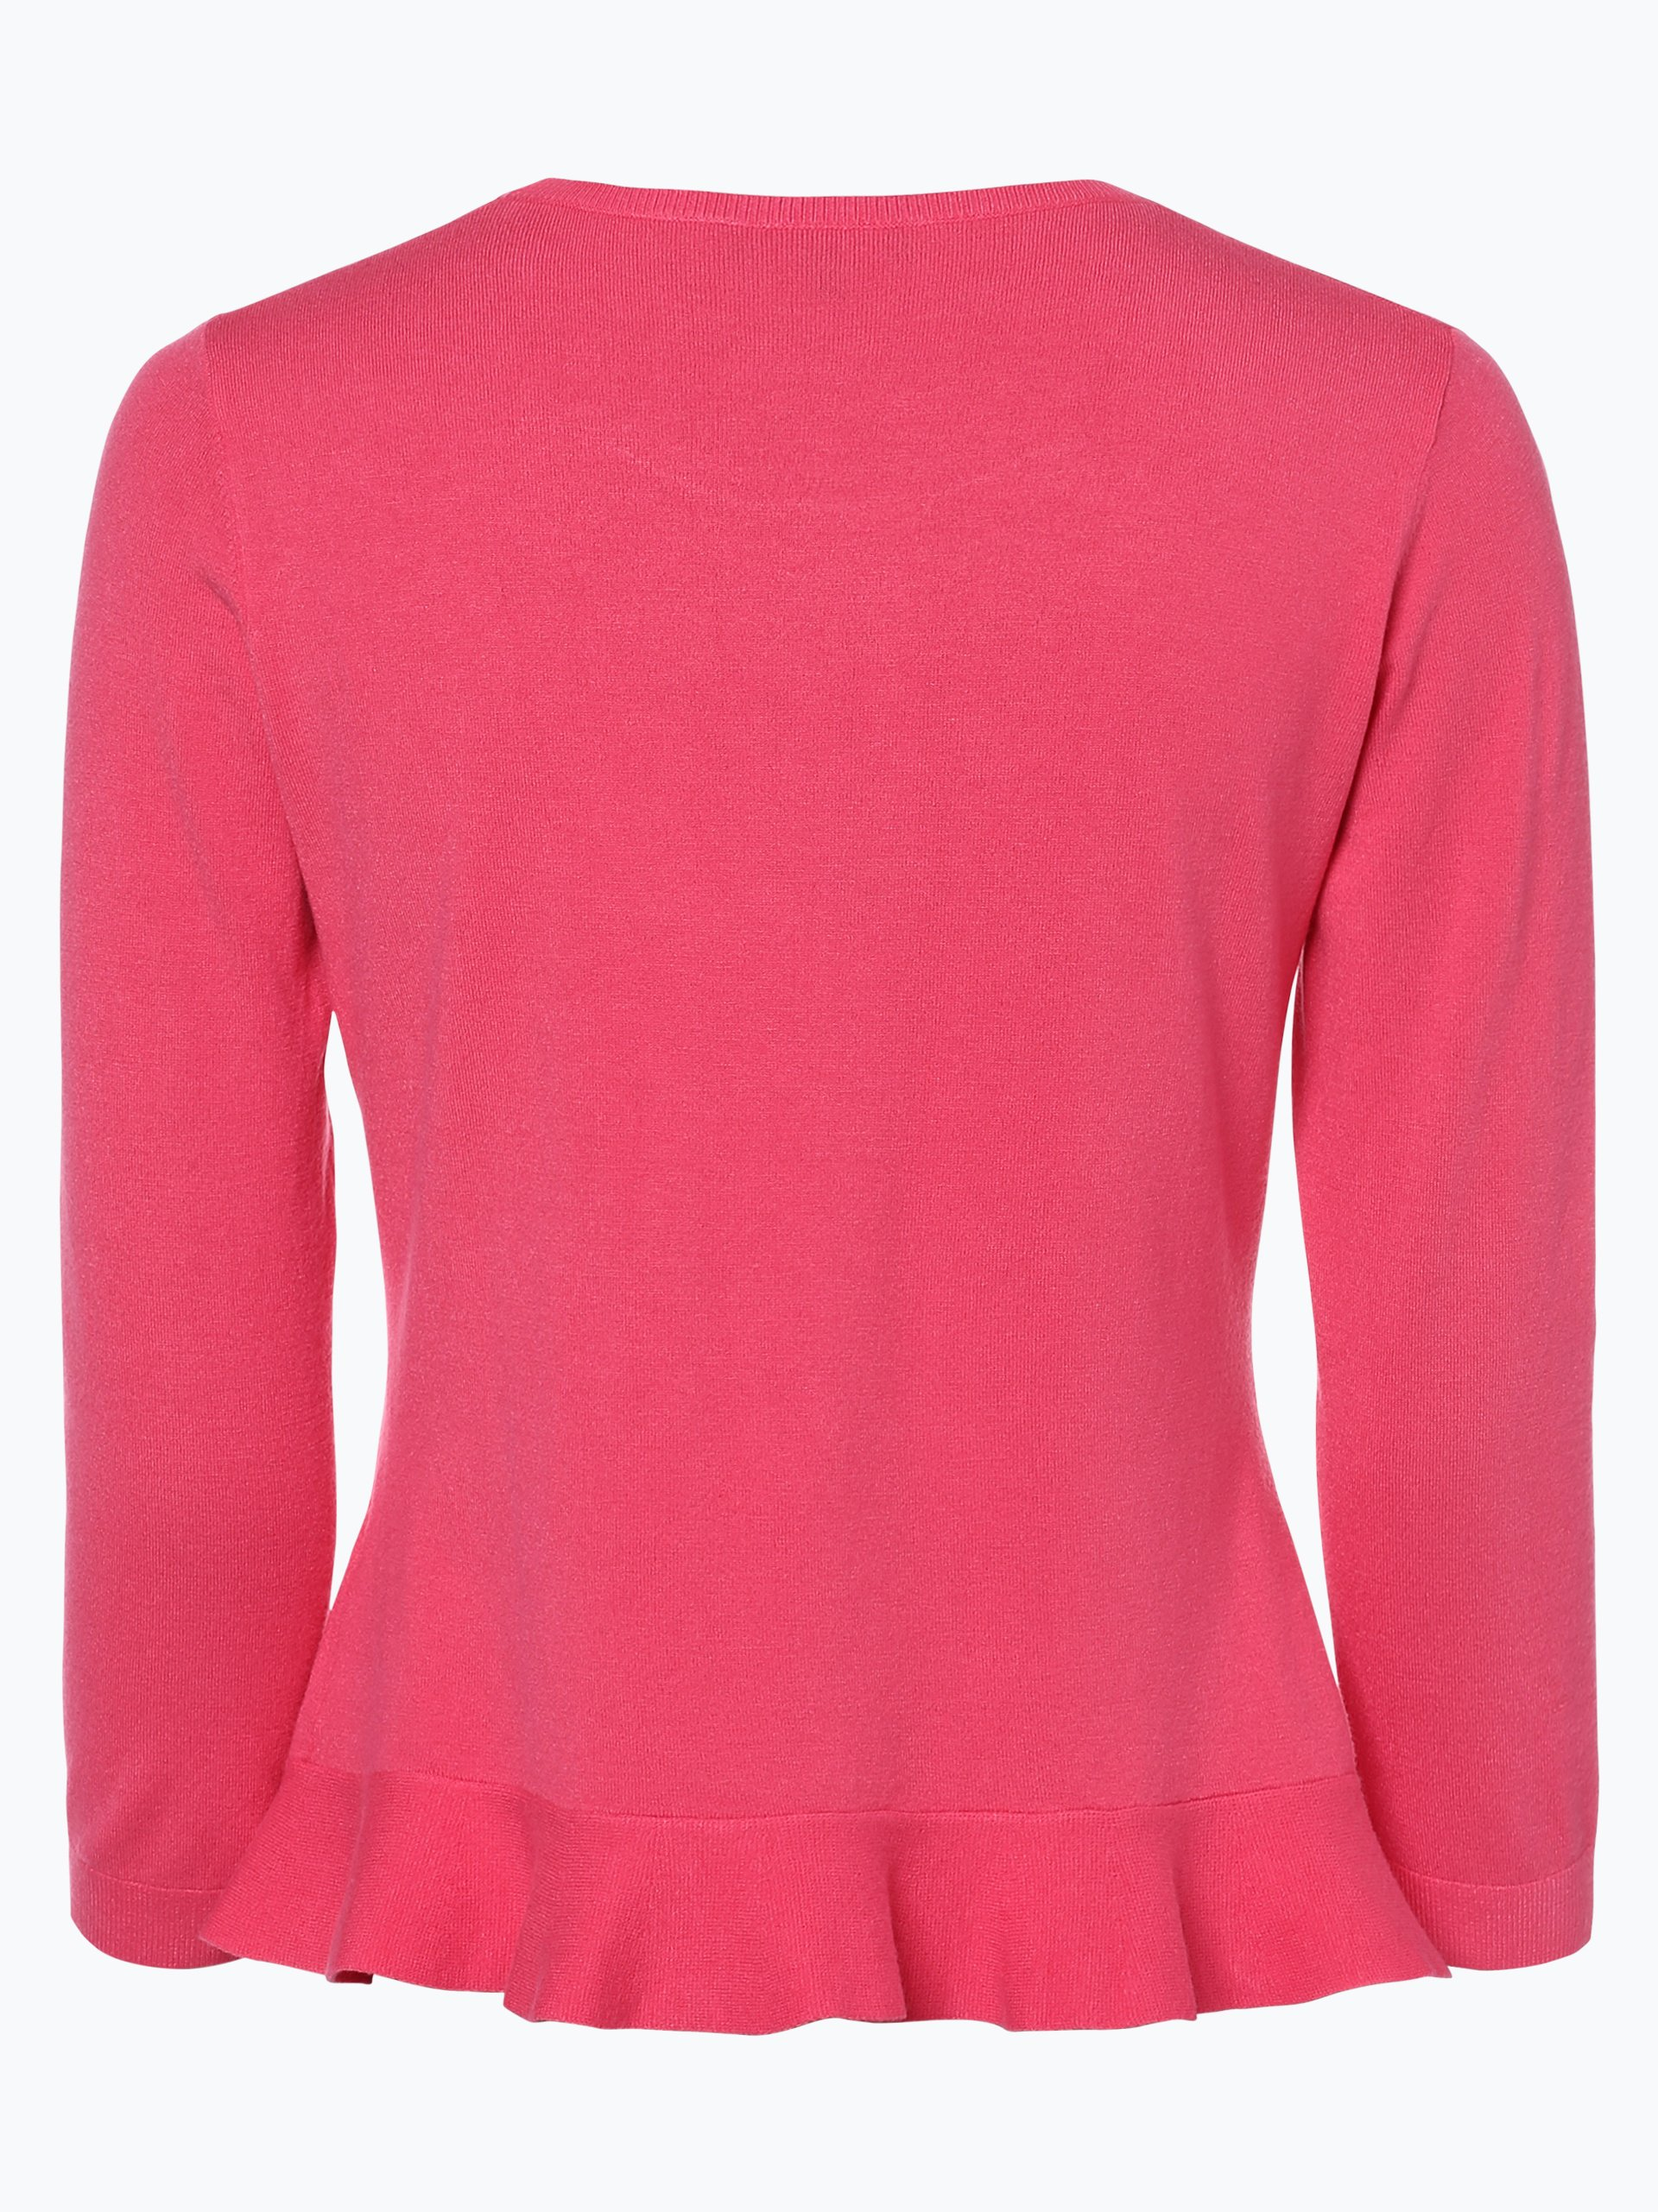 SvB Exquisit Damen Pullover